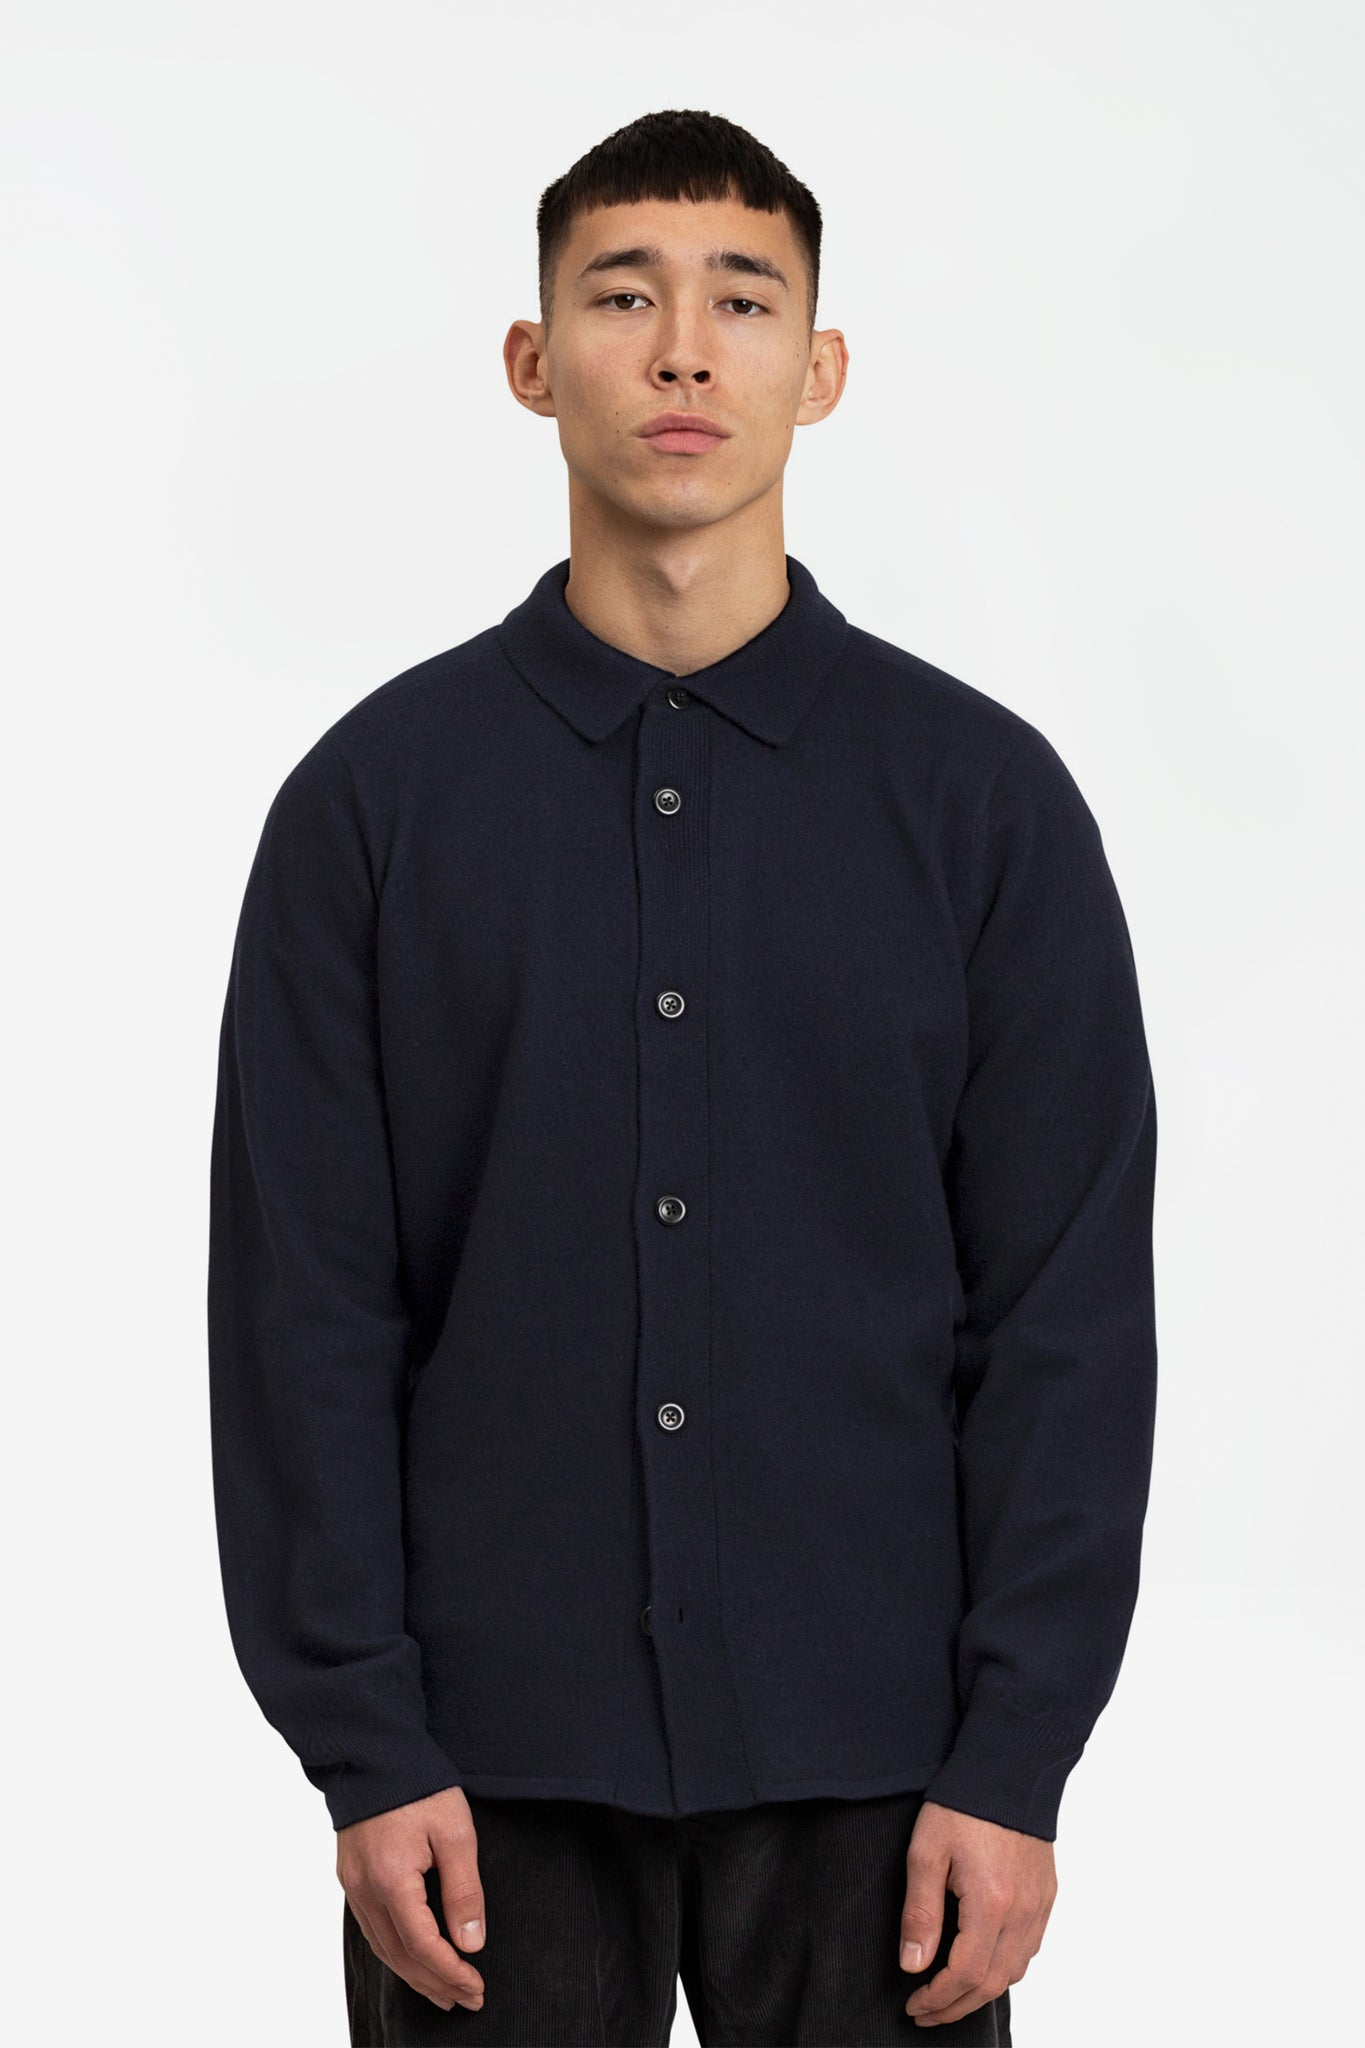 Martin boiled wool navy